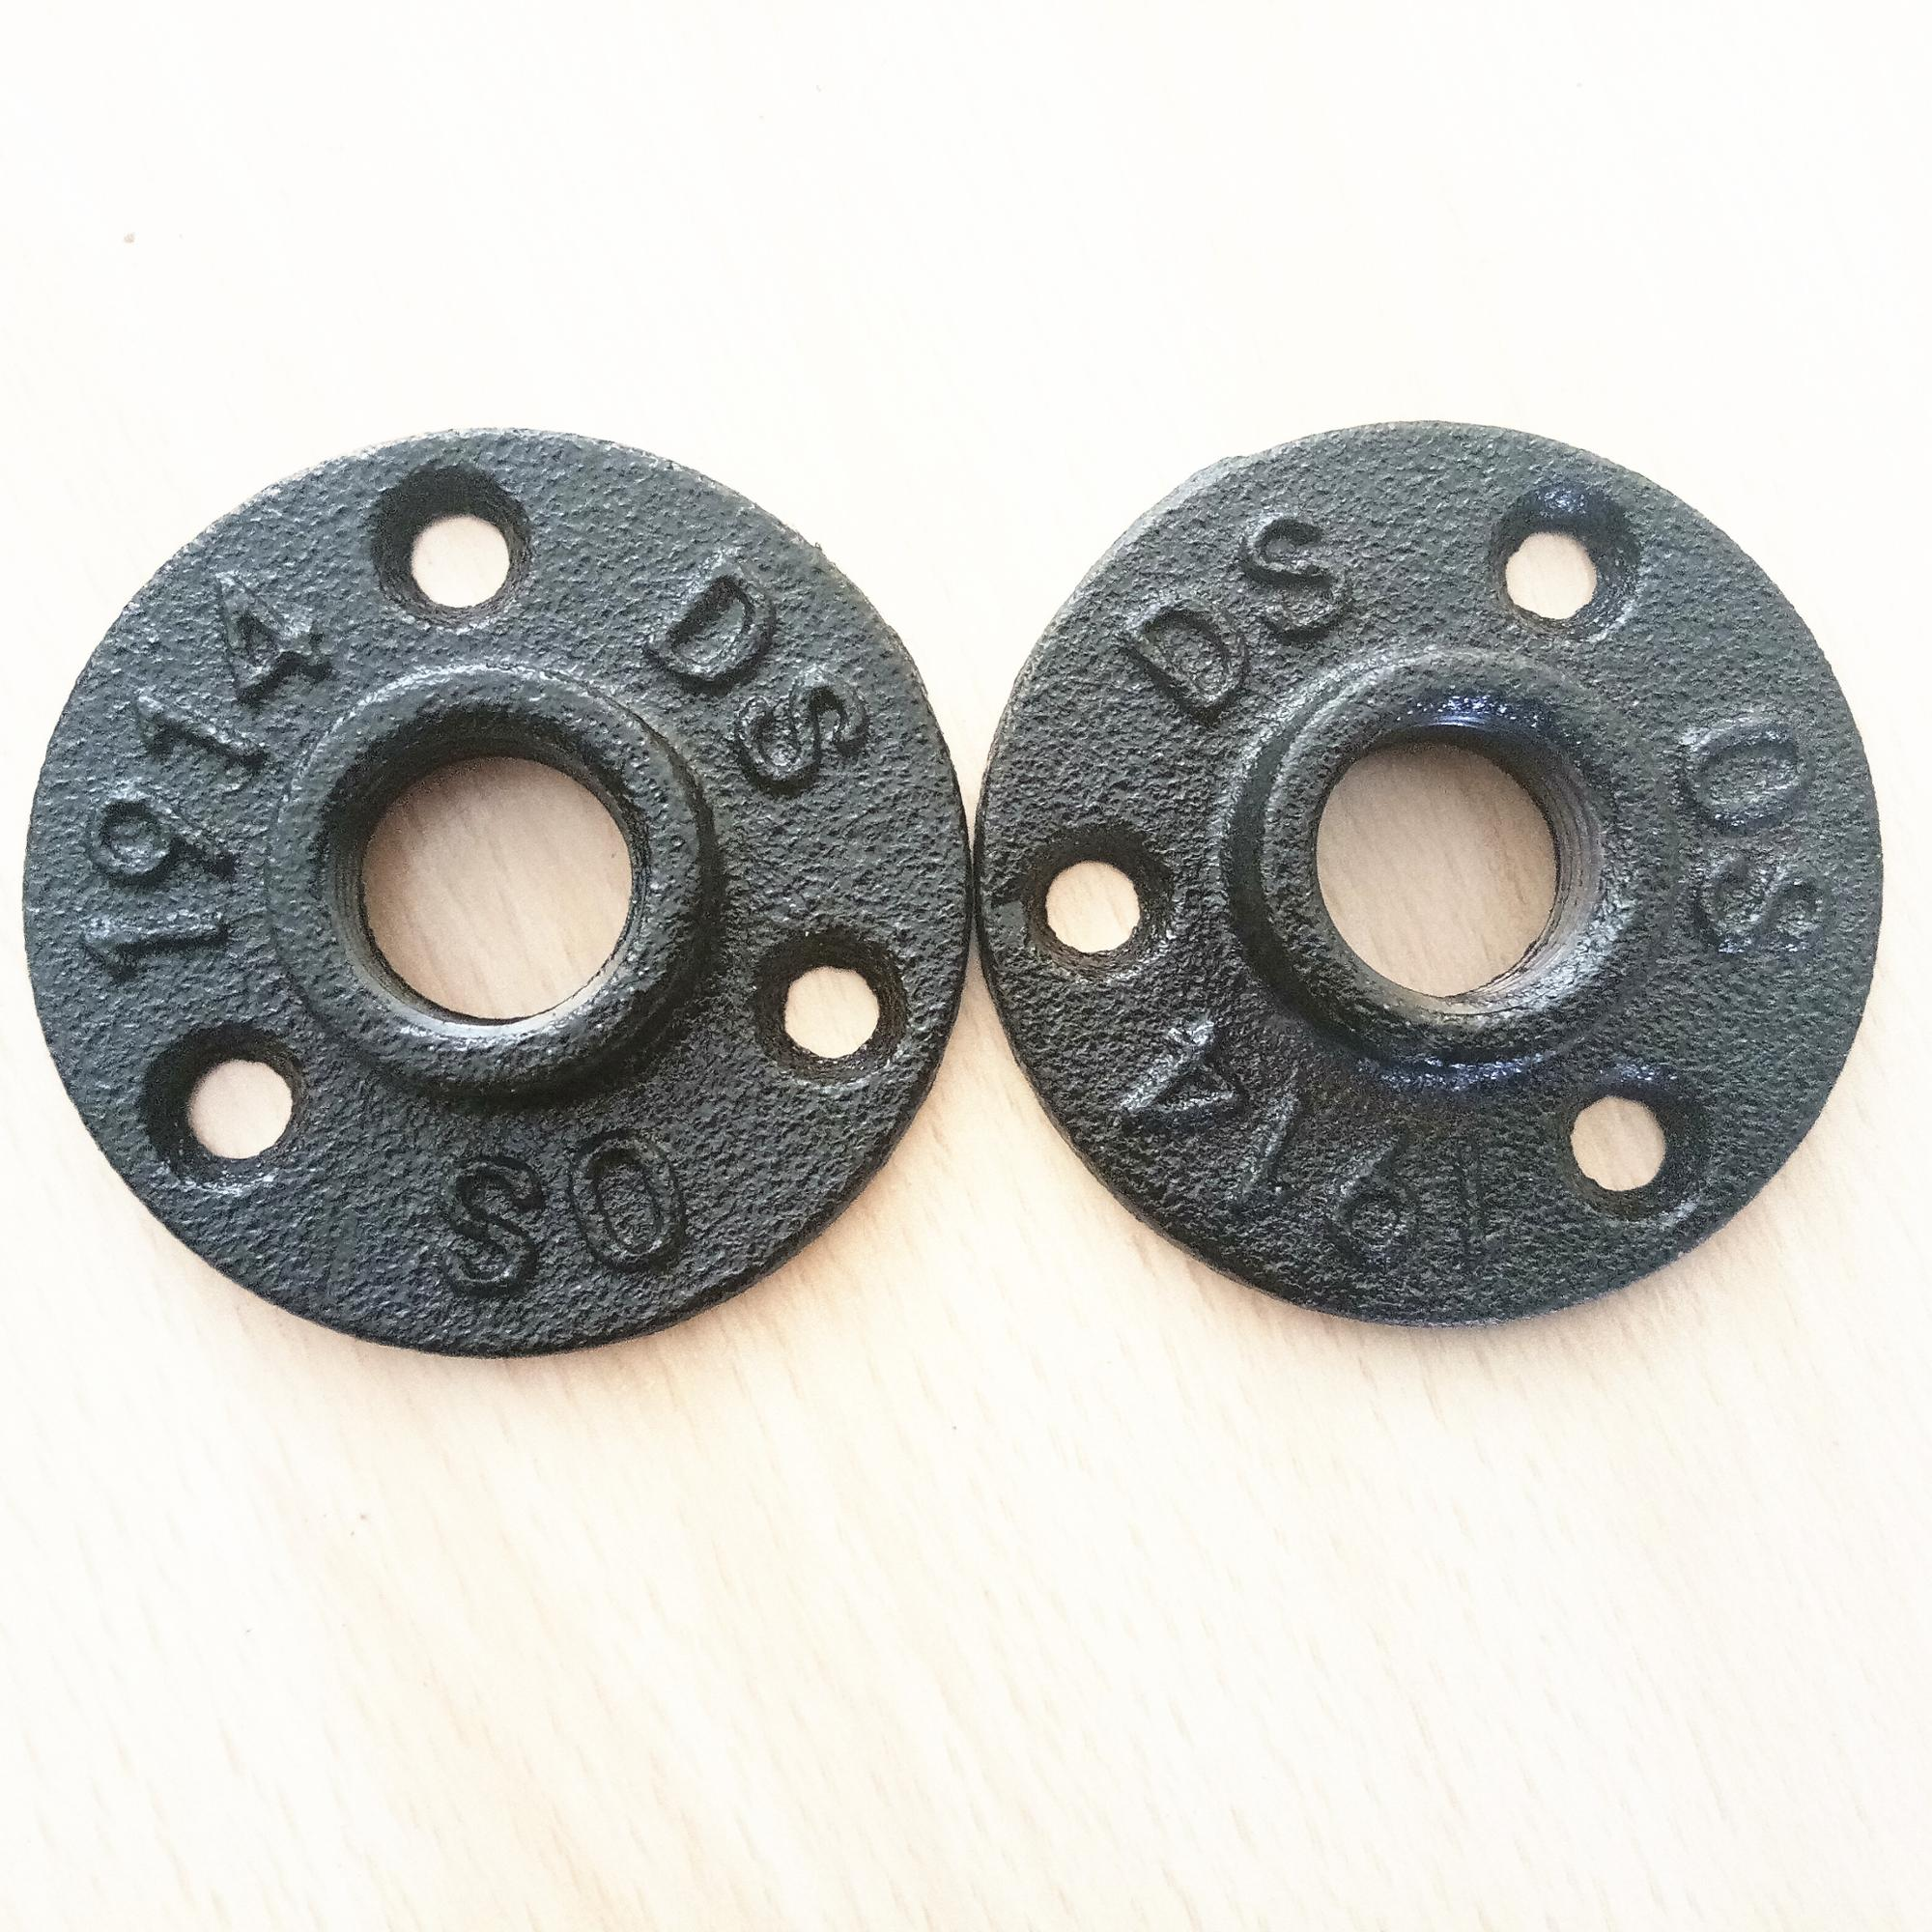 Customized black floor flange malleable iron threaded pipe fitting 1/2 and 3/4 inch for Toilet paper holder